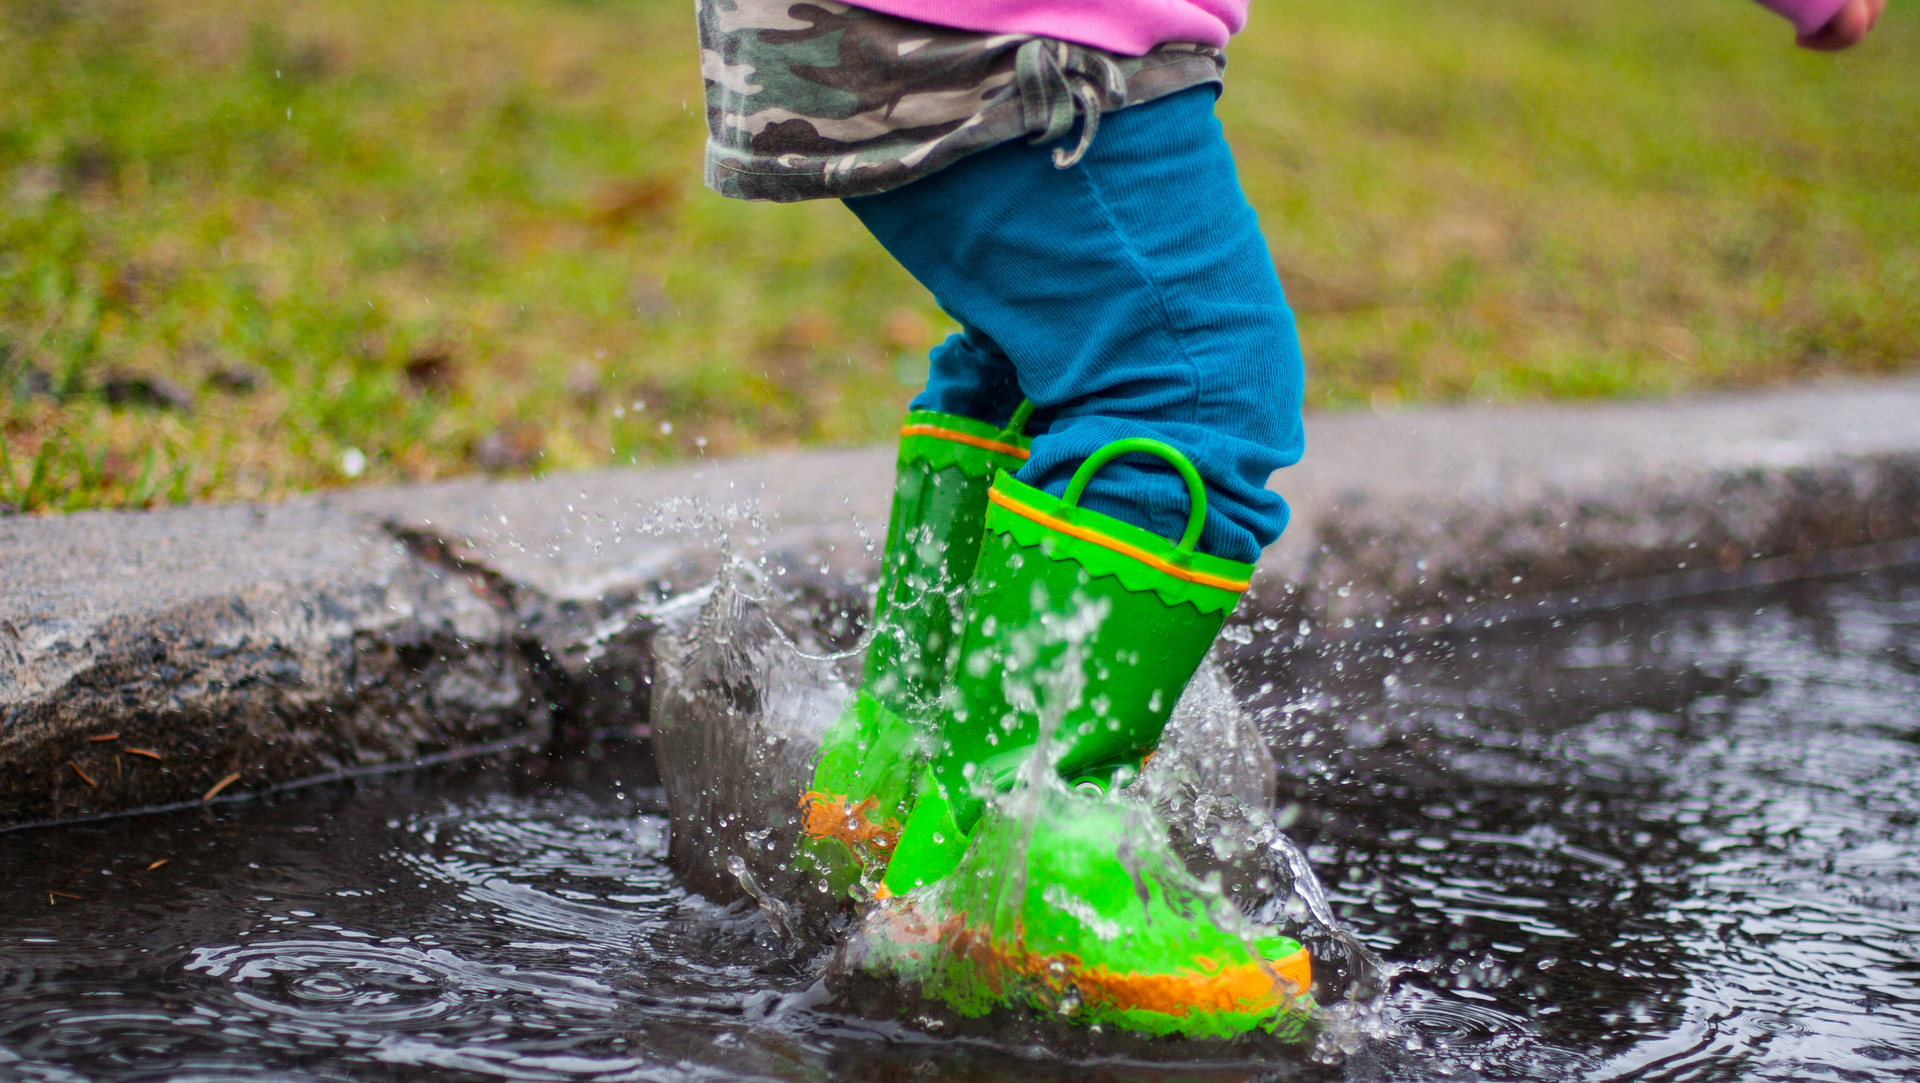 Toddler splashing in puddle